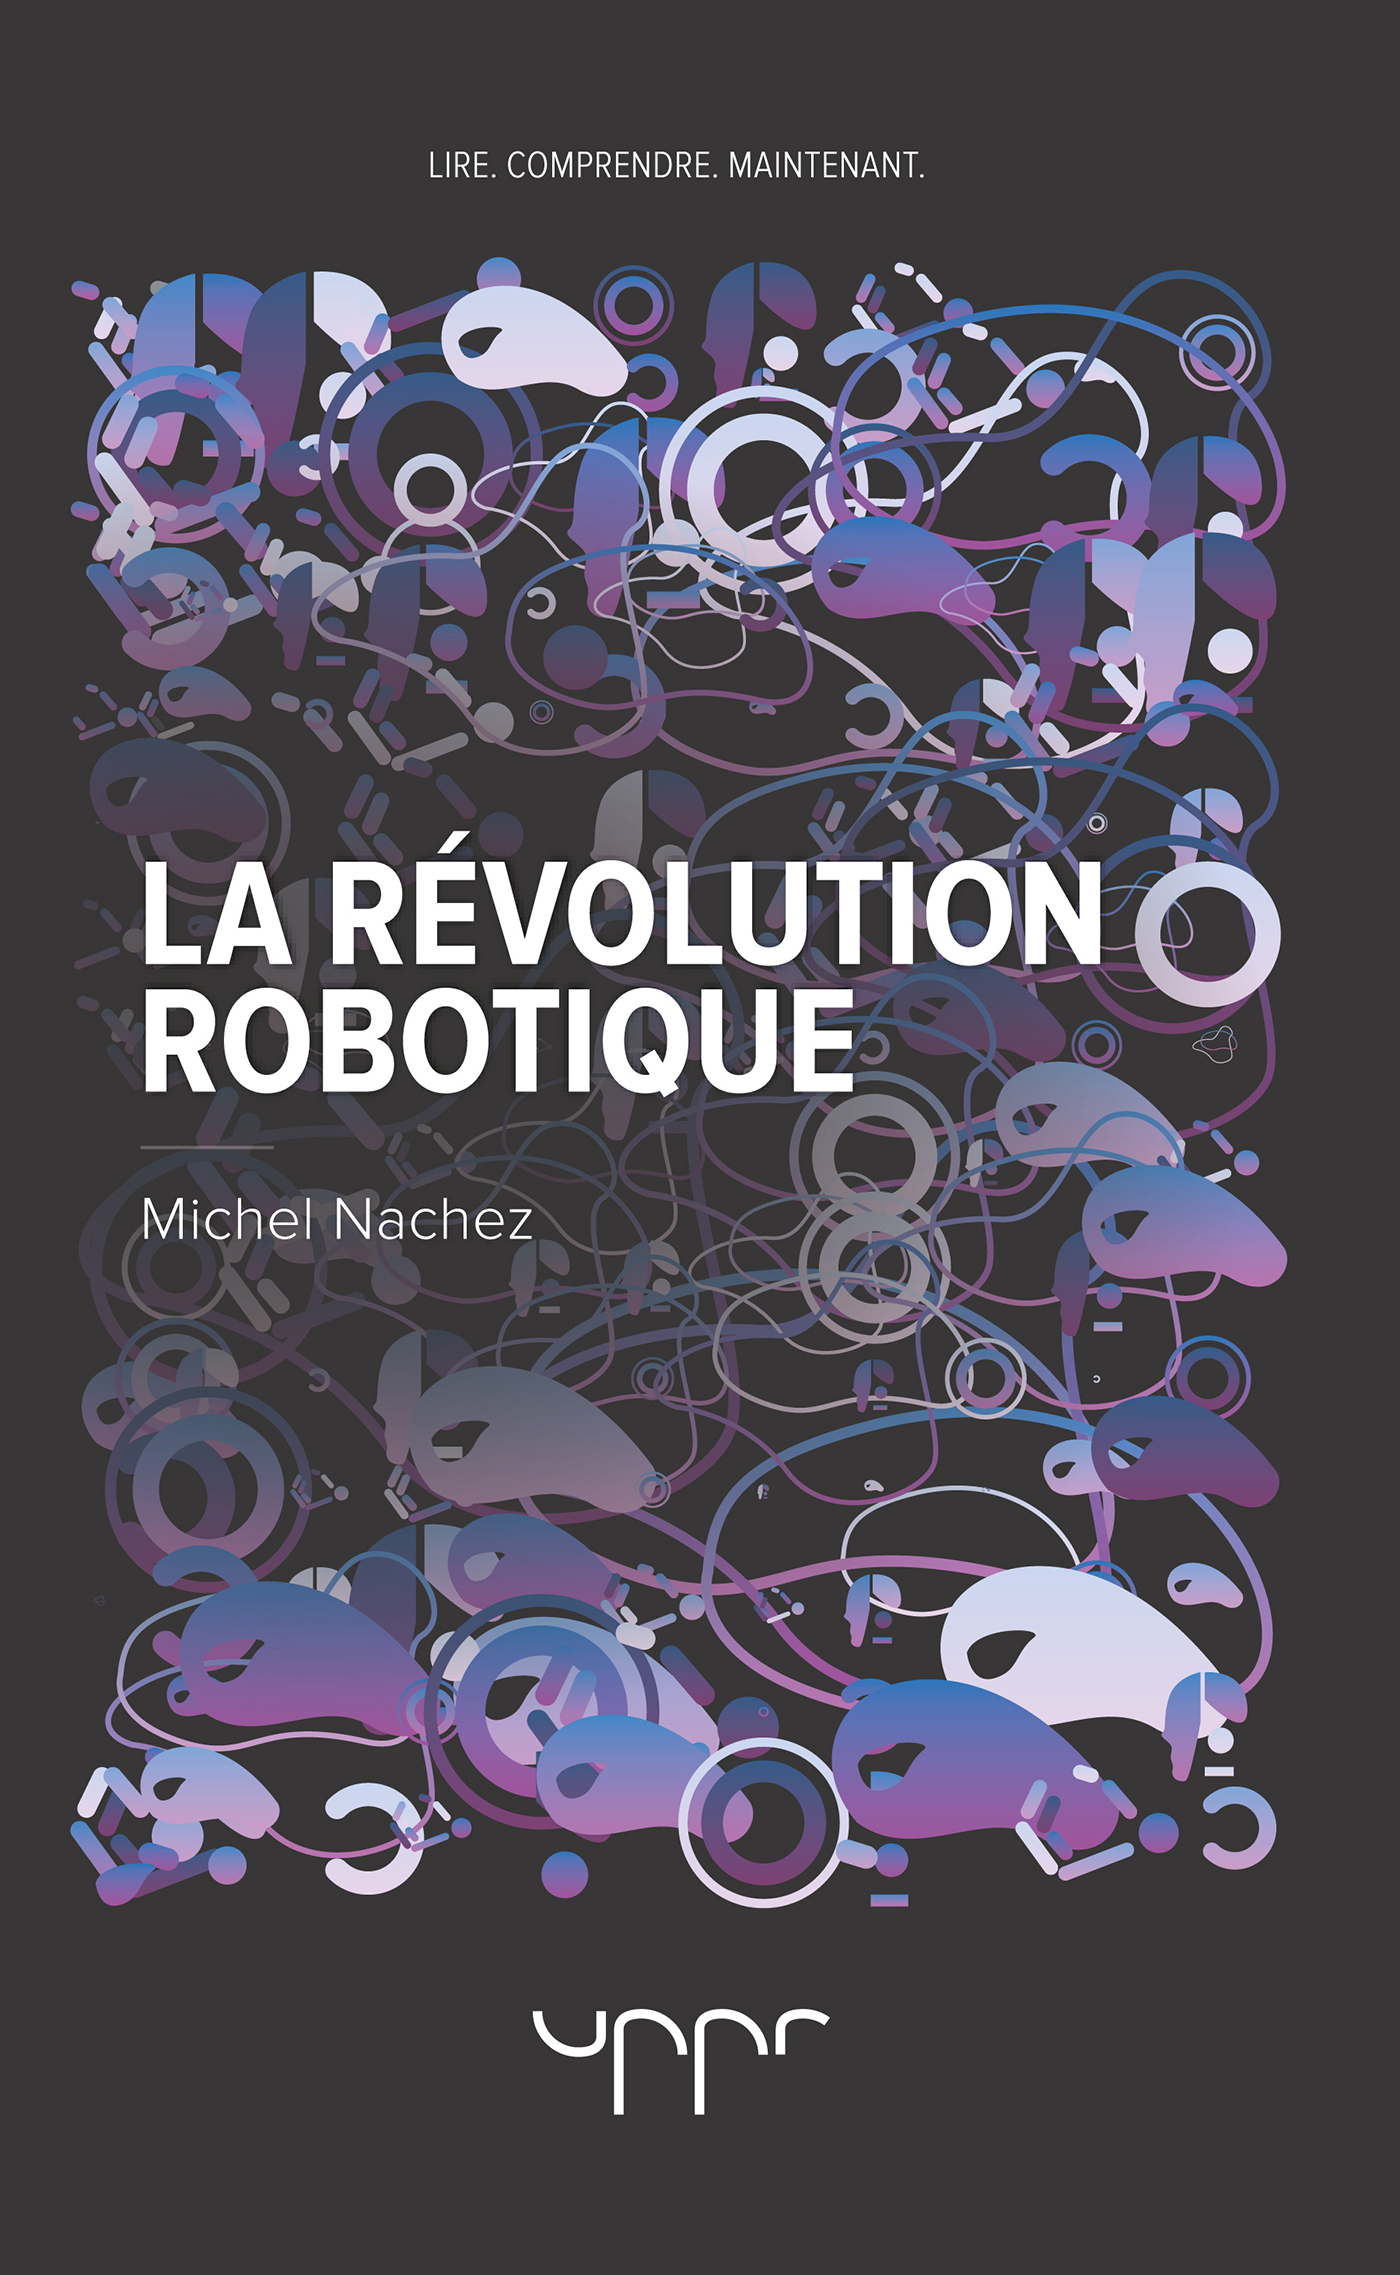 LA REVOLUTION ROBOTIQUE